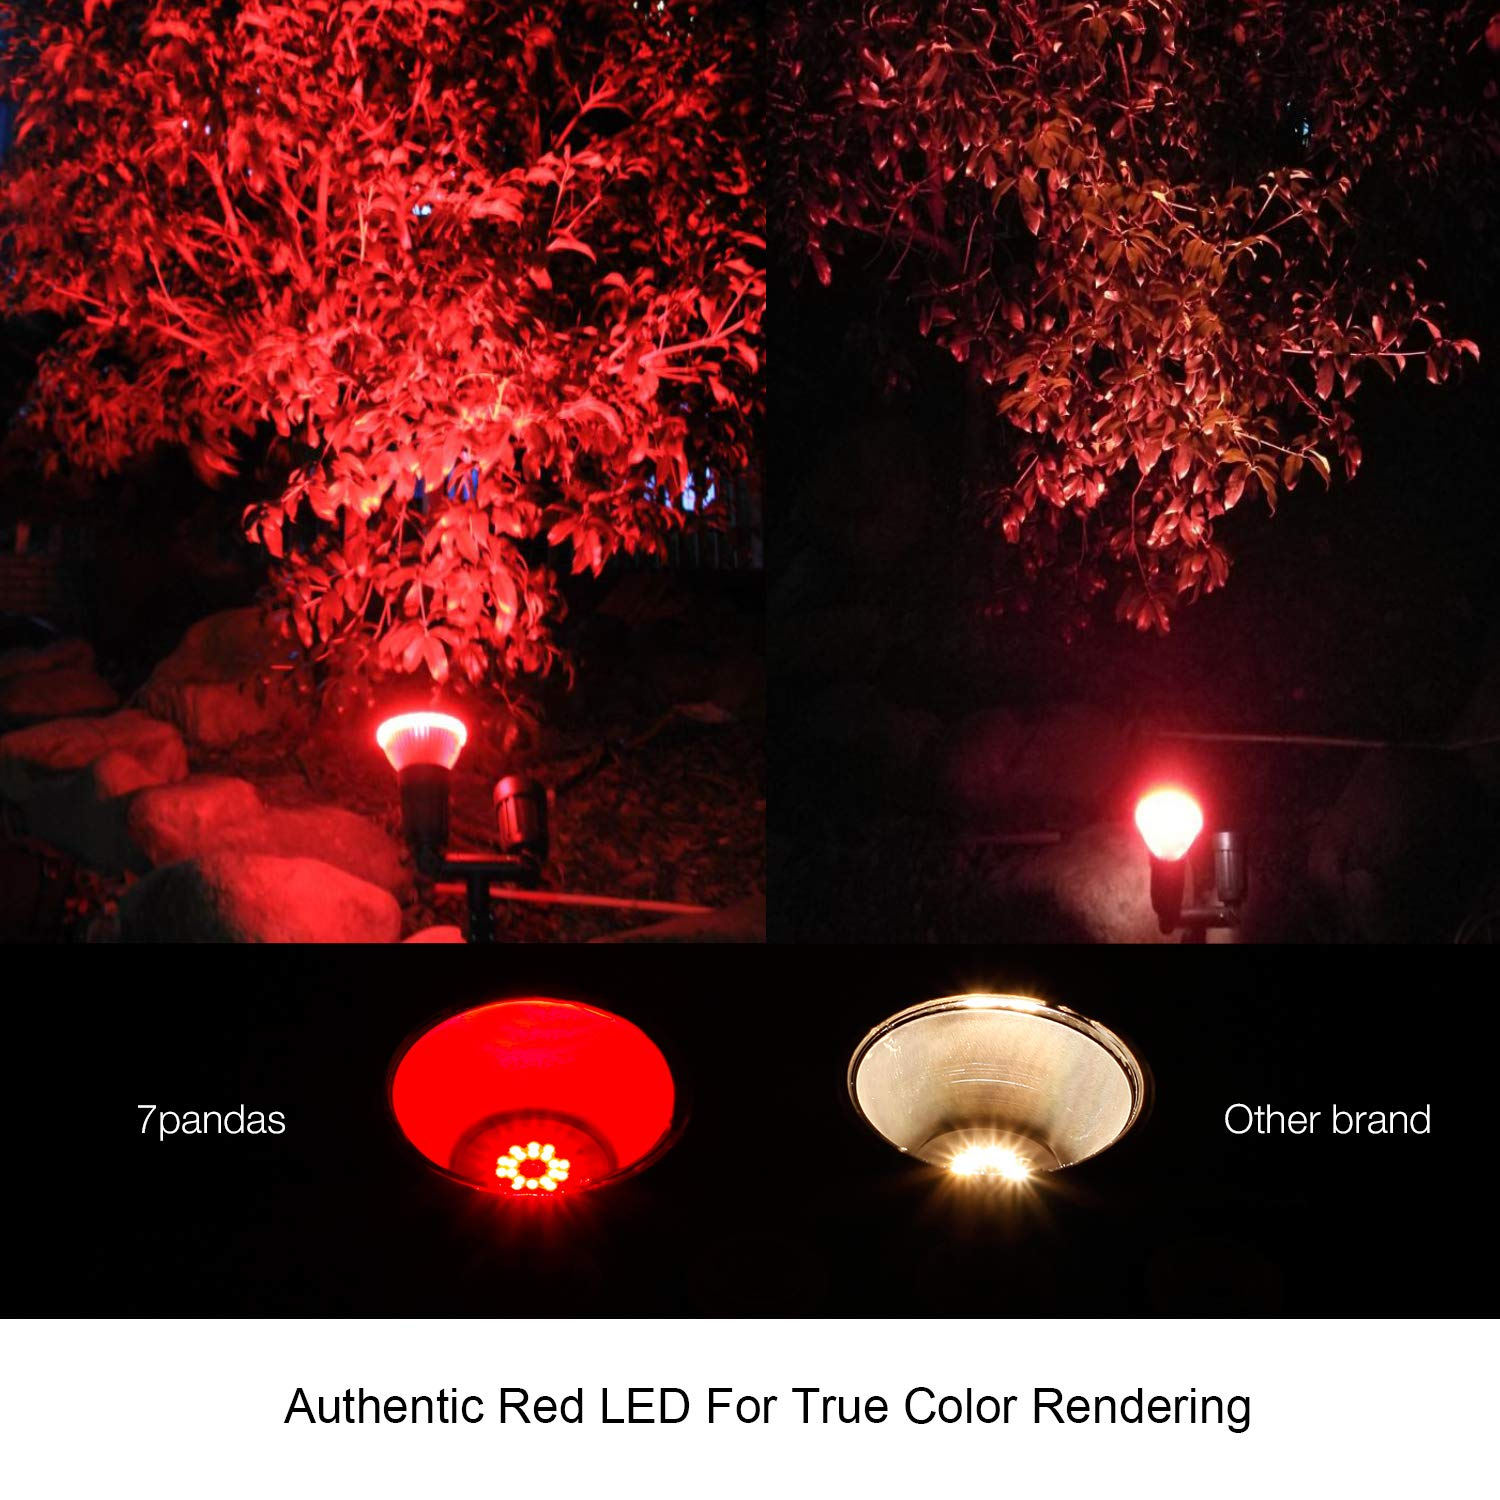 Outdoor 14w Led Par38 Flood Light Bulb Red Light 7pandas Usa Lighting Store